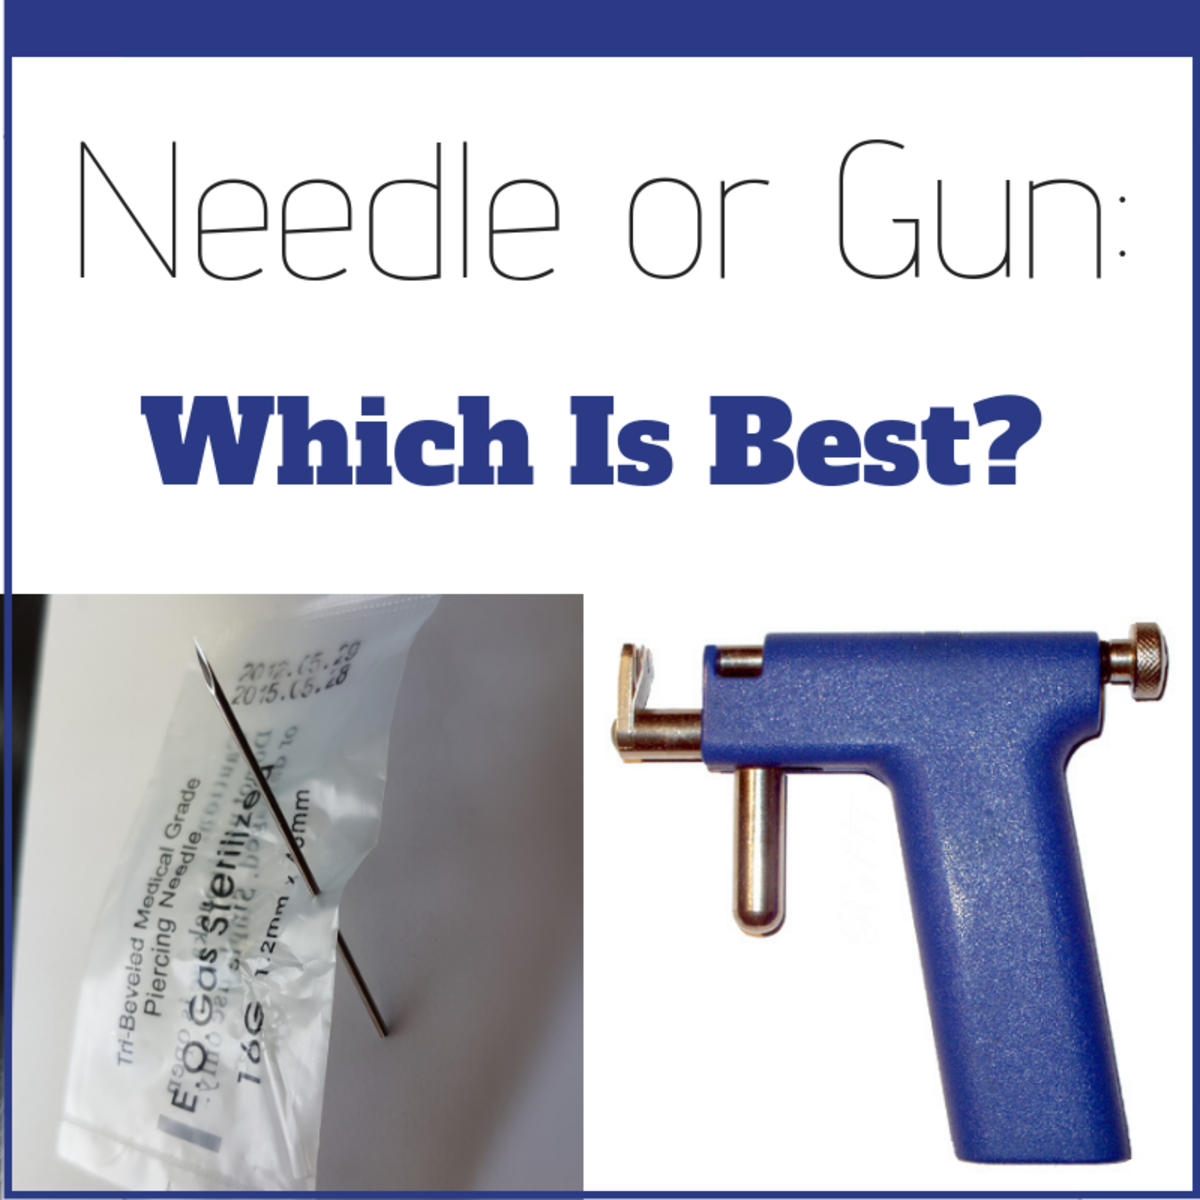 Piercing Needles vs Piercing Gun: Which Is Safer?